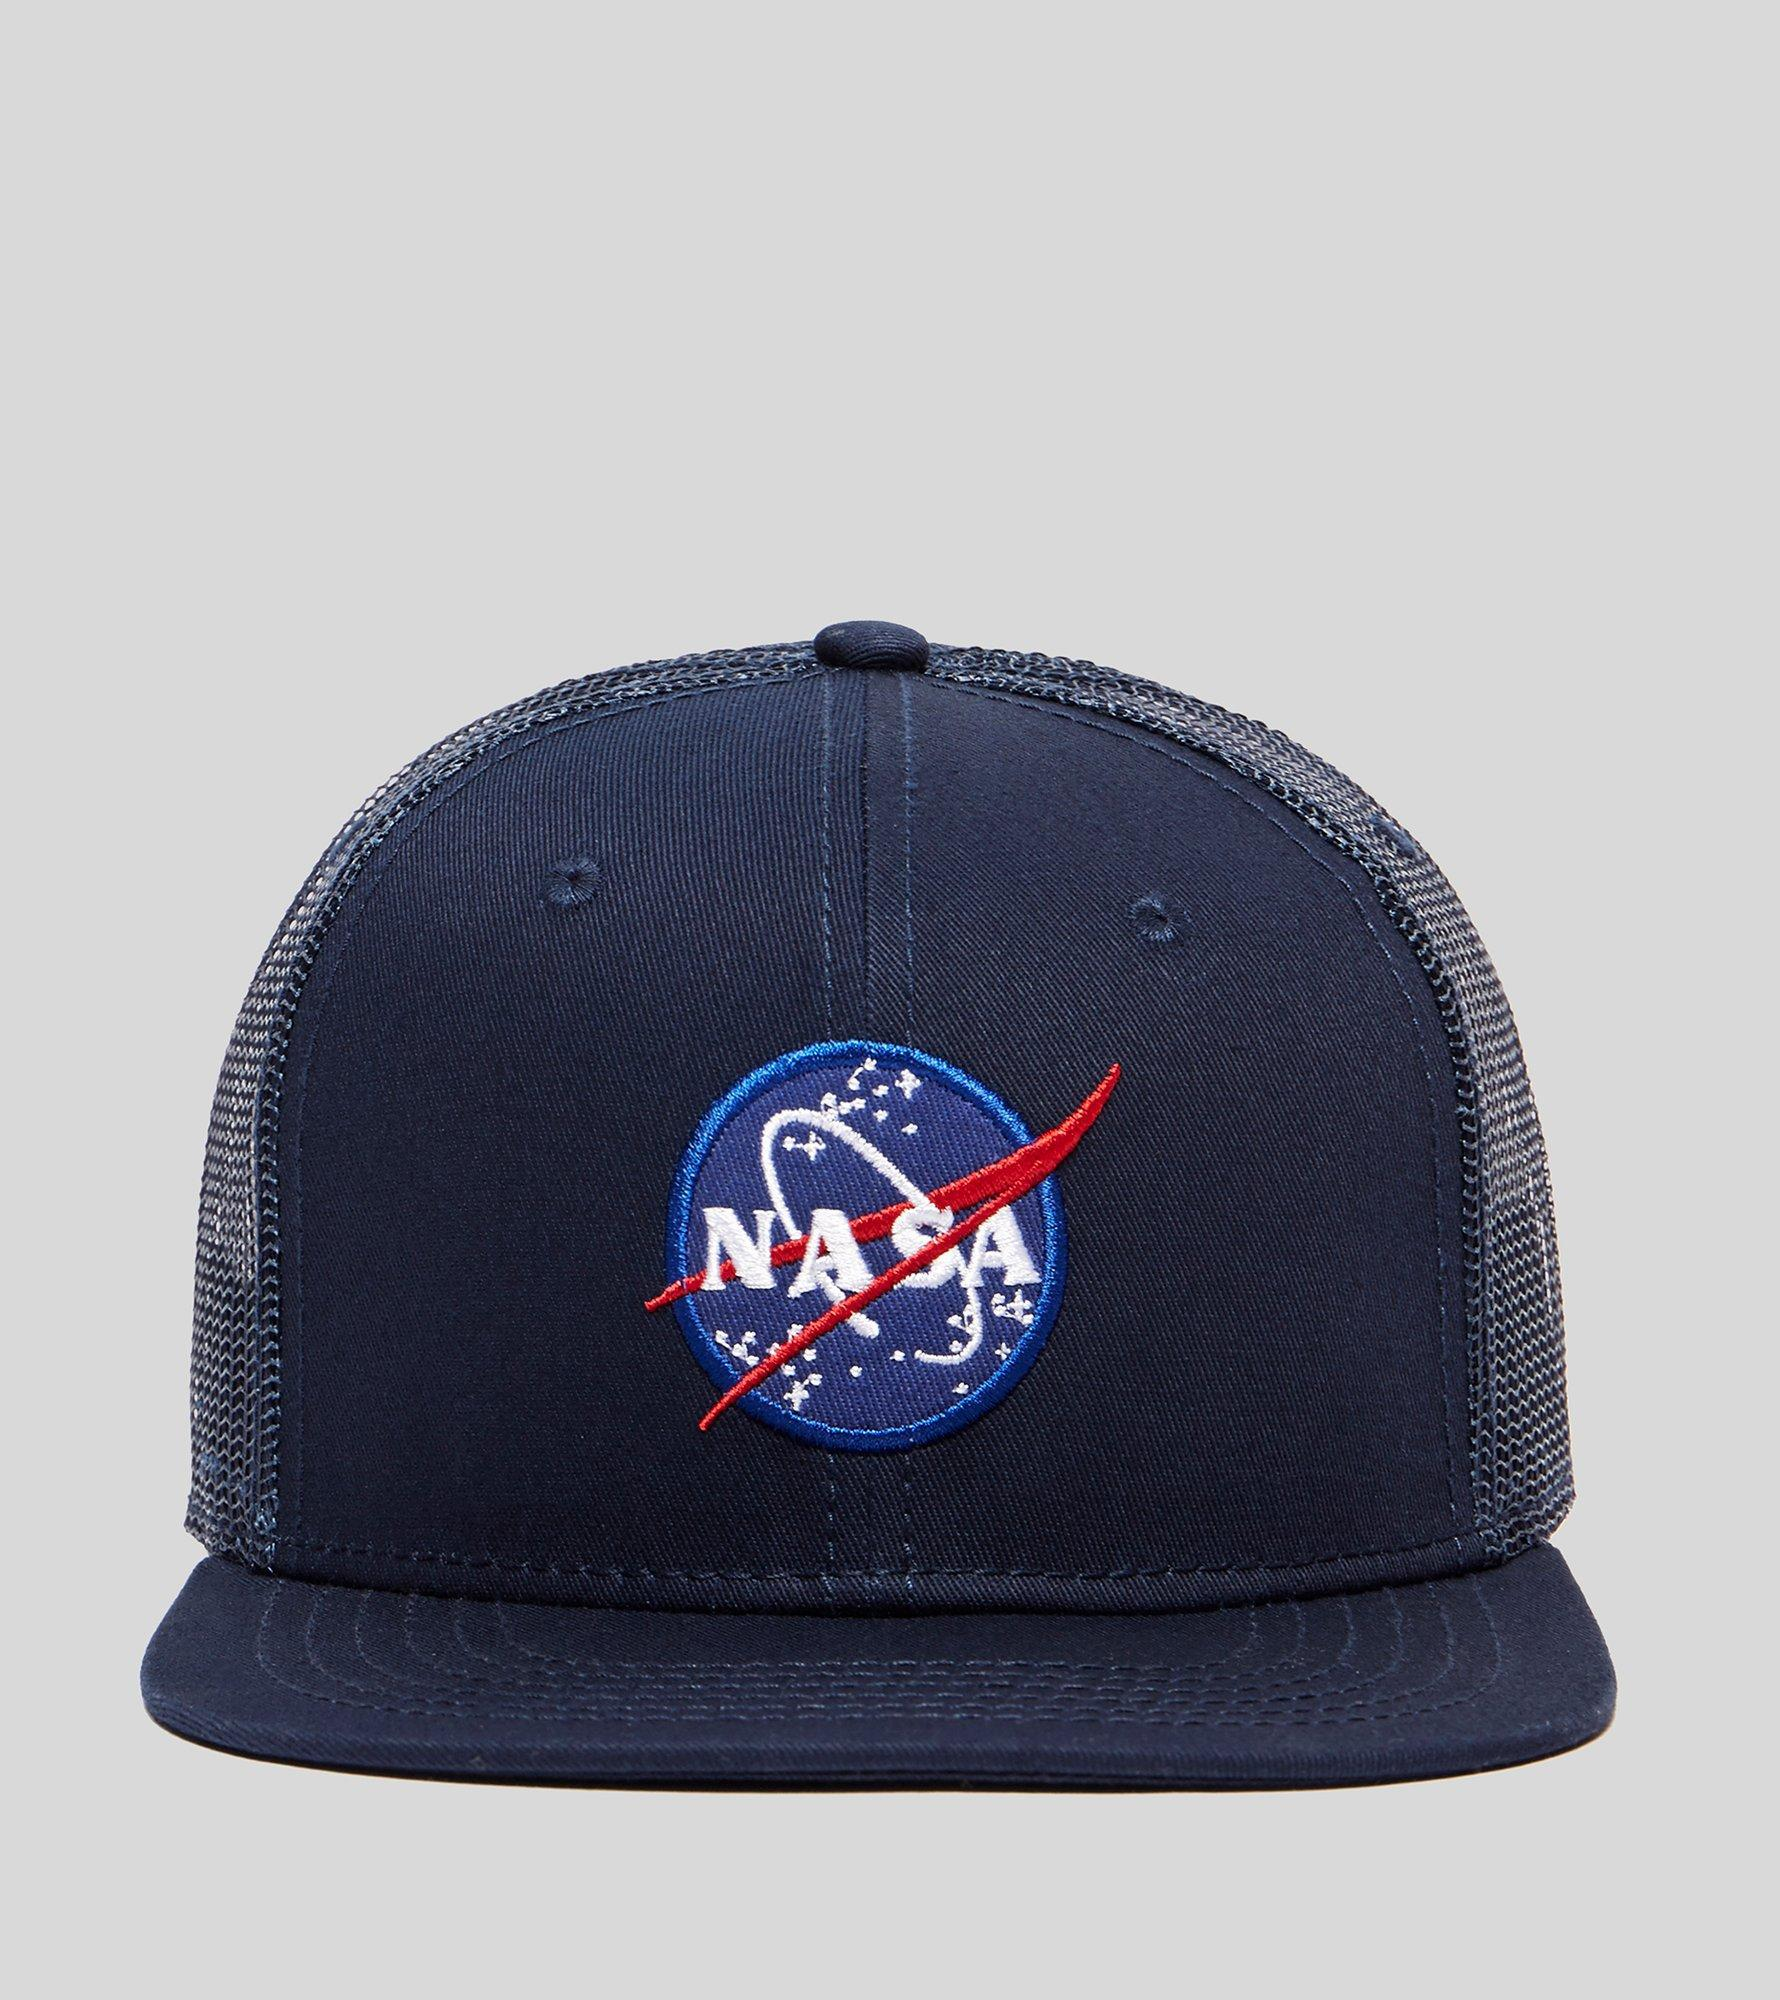 265e04caf8a Lyst - Alpha Industries Nasa Trucker Cap in Blue for Men